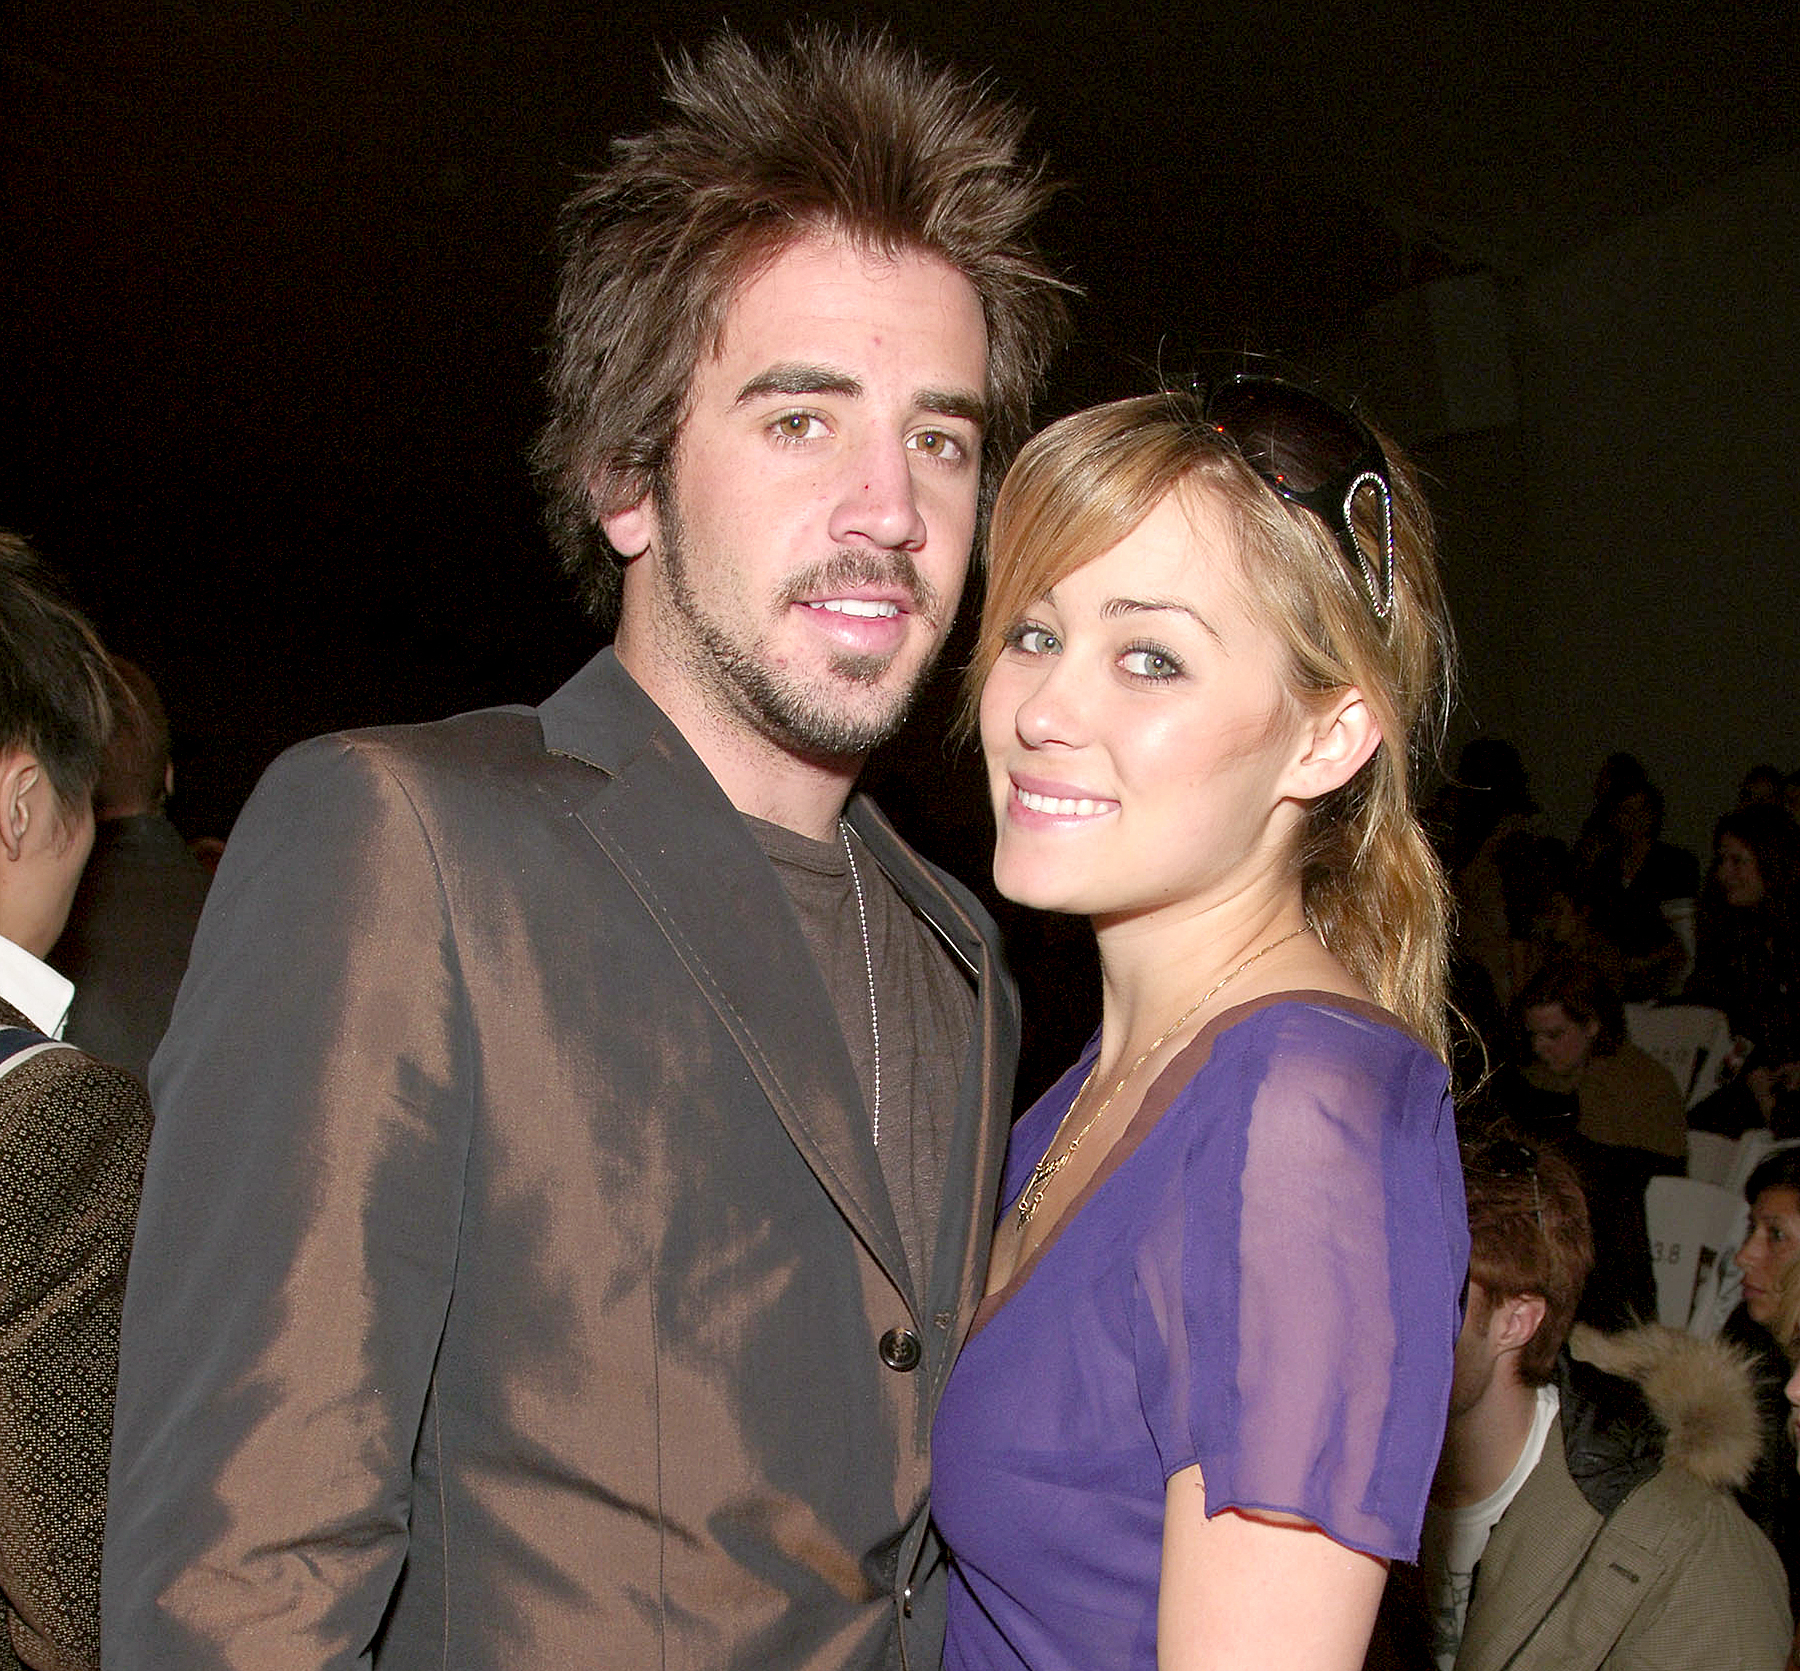 Jason Wahler and Lauren Conrad during Olympus Fashion Week Fall 2006.